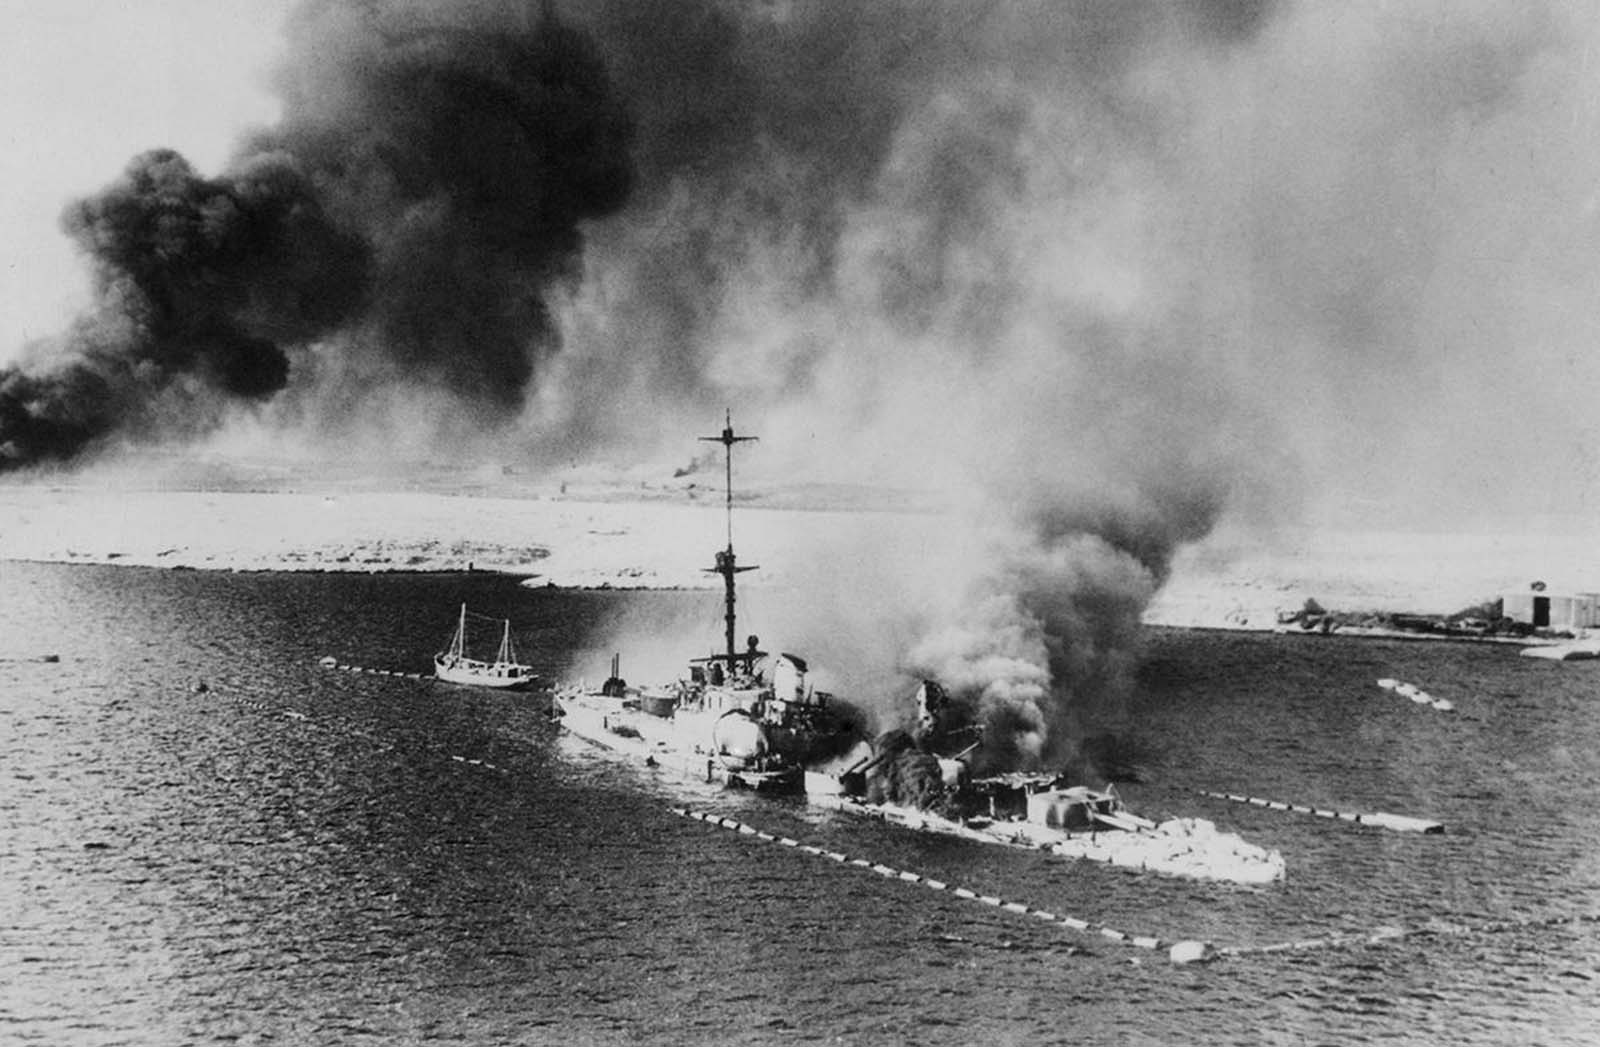 This photo, made from a British warplane during the assault of Tobruk shows the Italian Cruiser San Giorgio, burning amidships, in the harbor of Tobruk, on February 18, 1941. The ship was scuttled, its decks appear to be covered with wrecked and smashed gear.